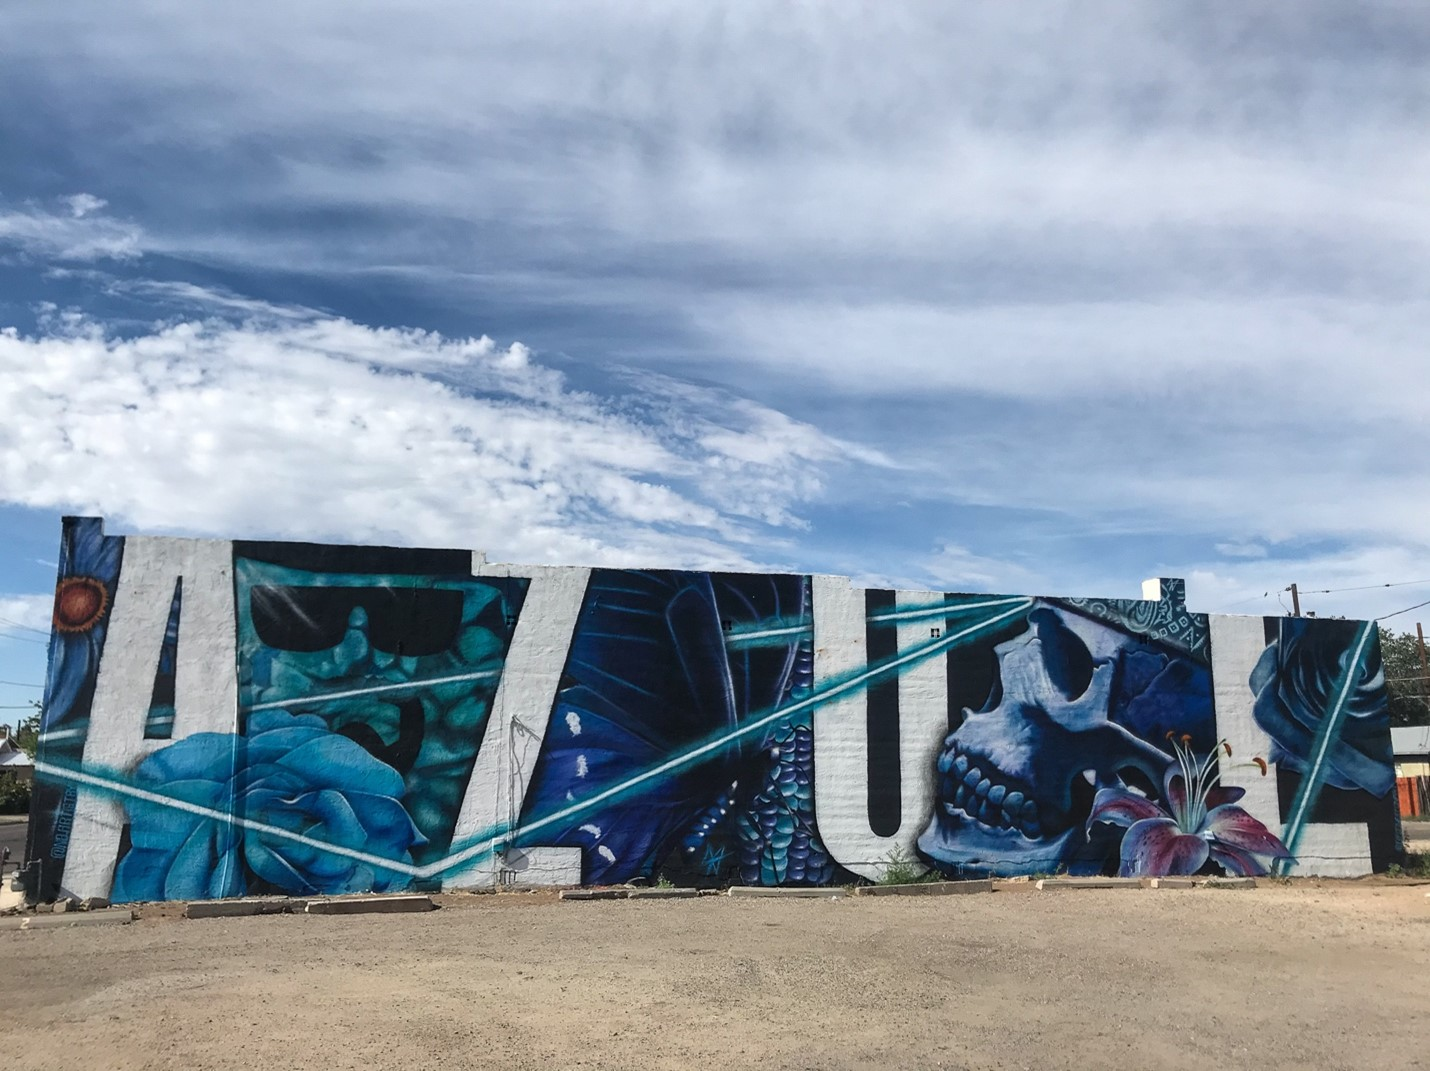 Large white letters spelling AZUL amidst blue imagery